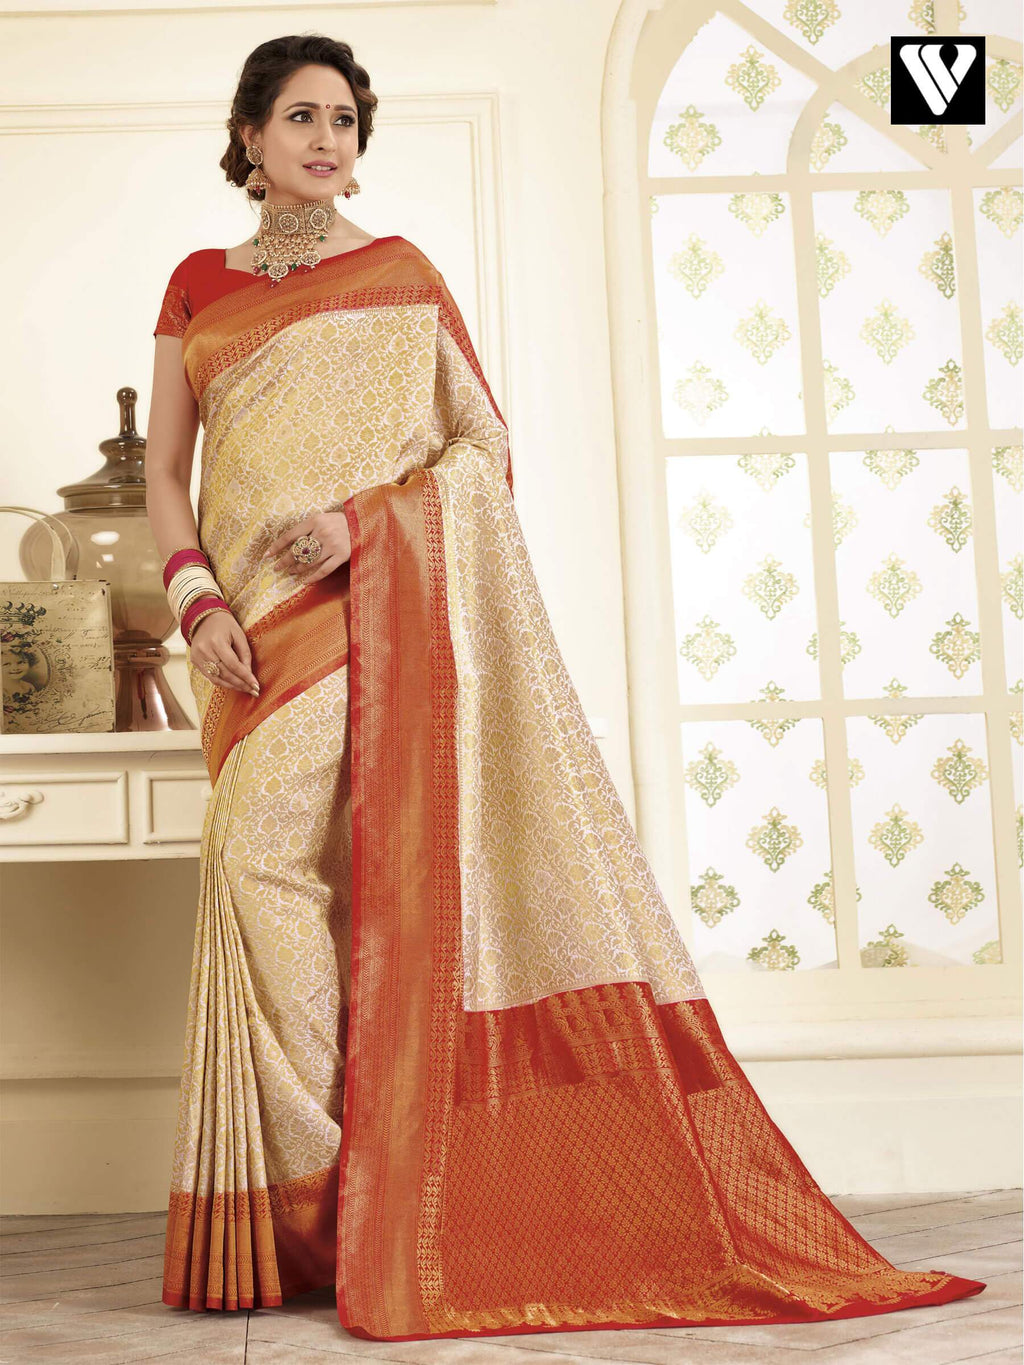 Designer Latest Banarasi Art Silk Sarees In Cream Gold